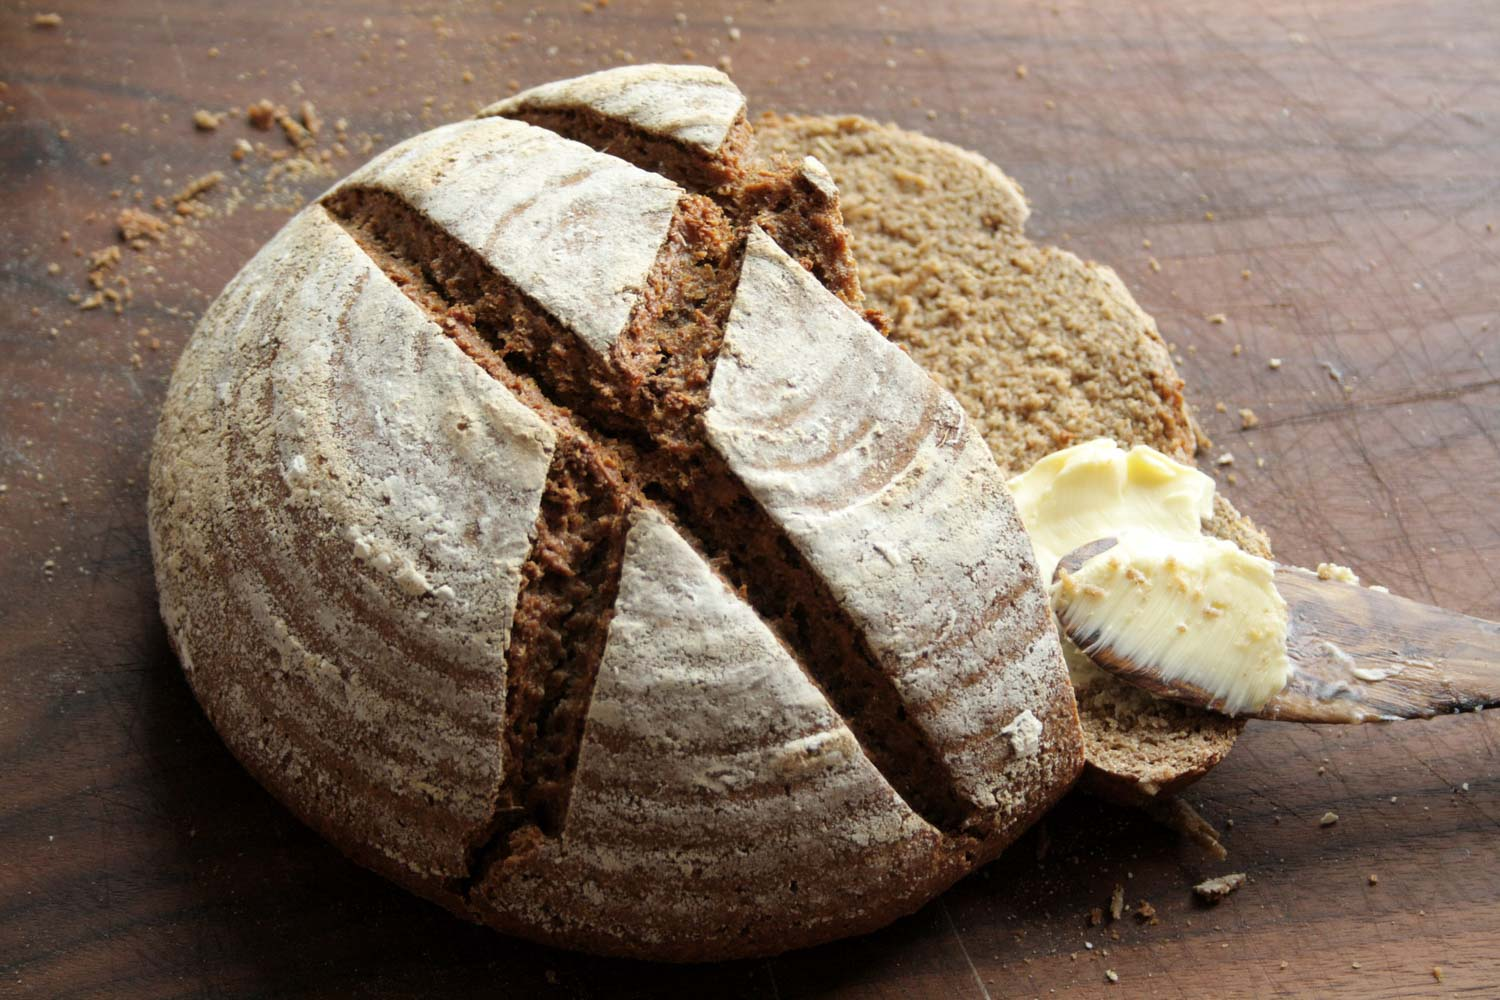 Handmade rye bread with butter on a wooden background